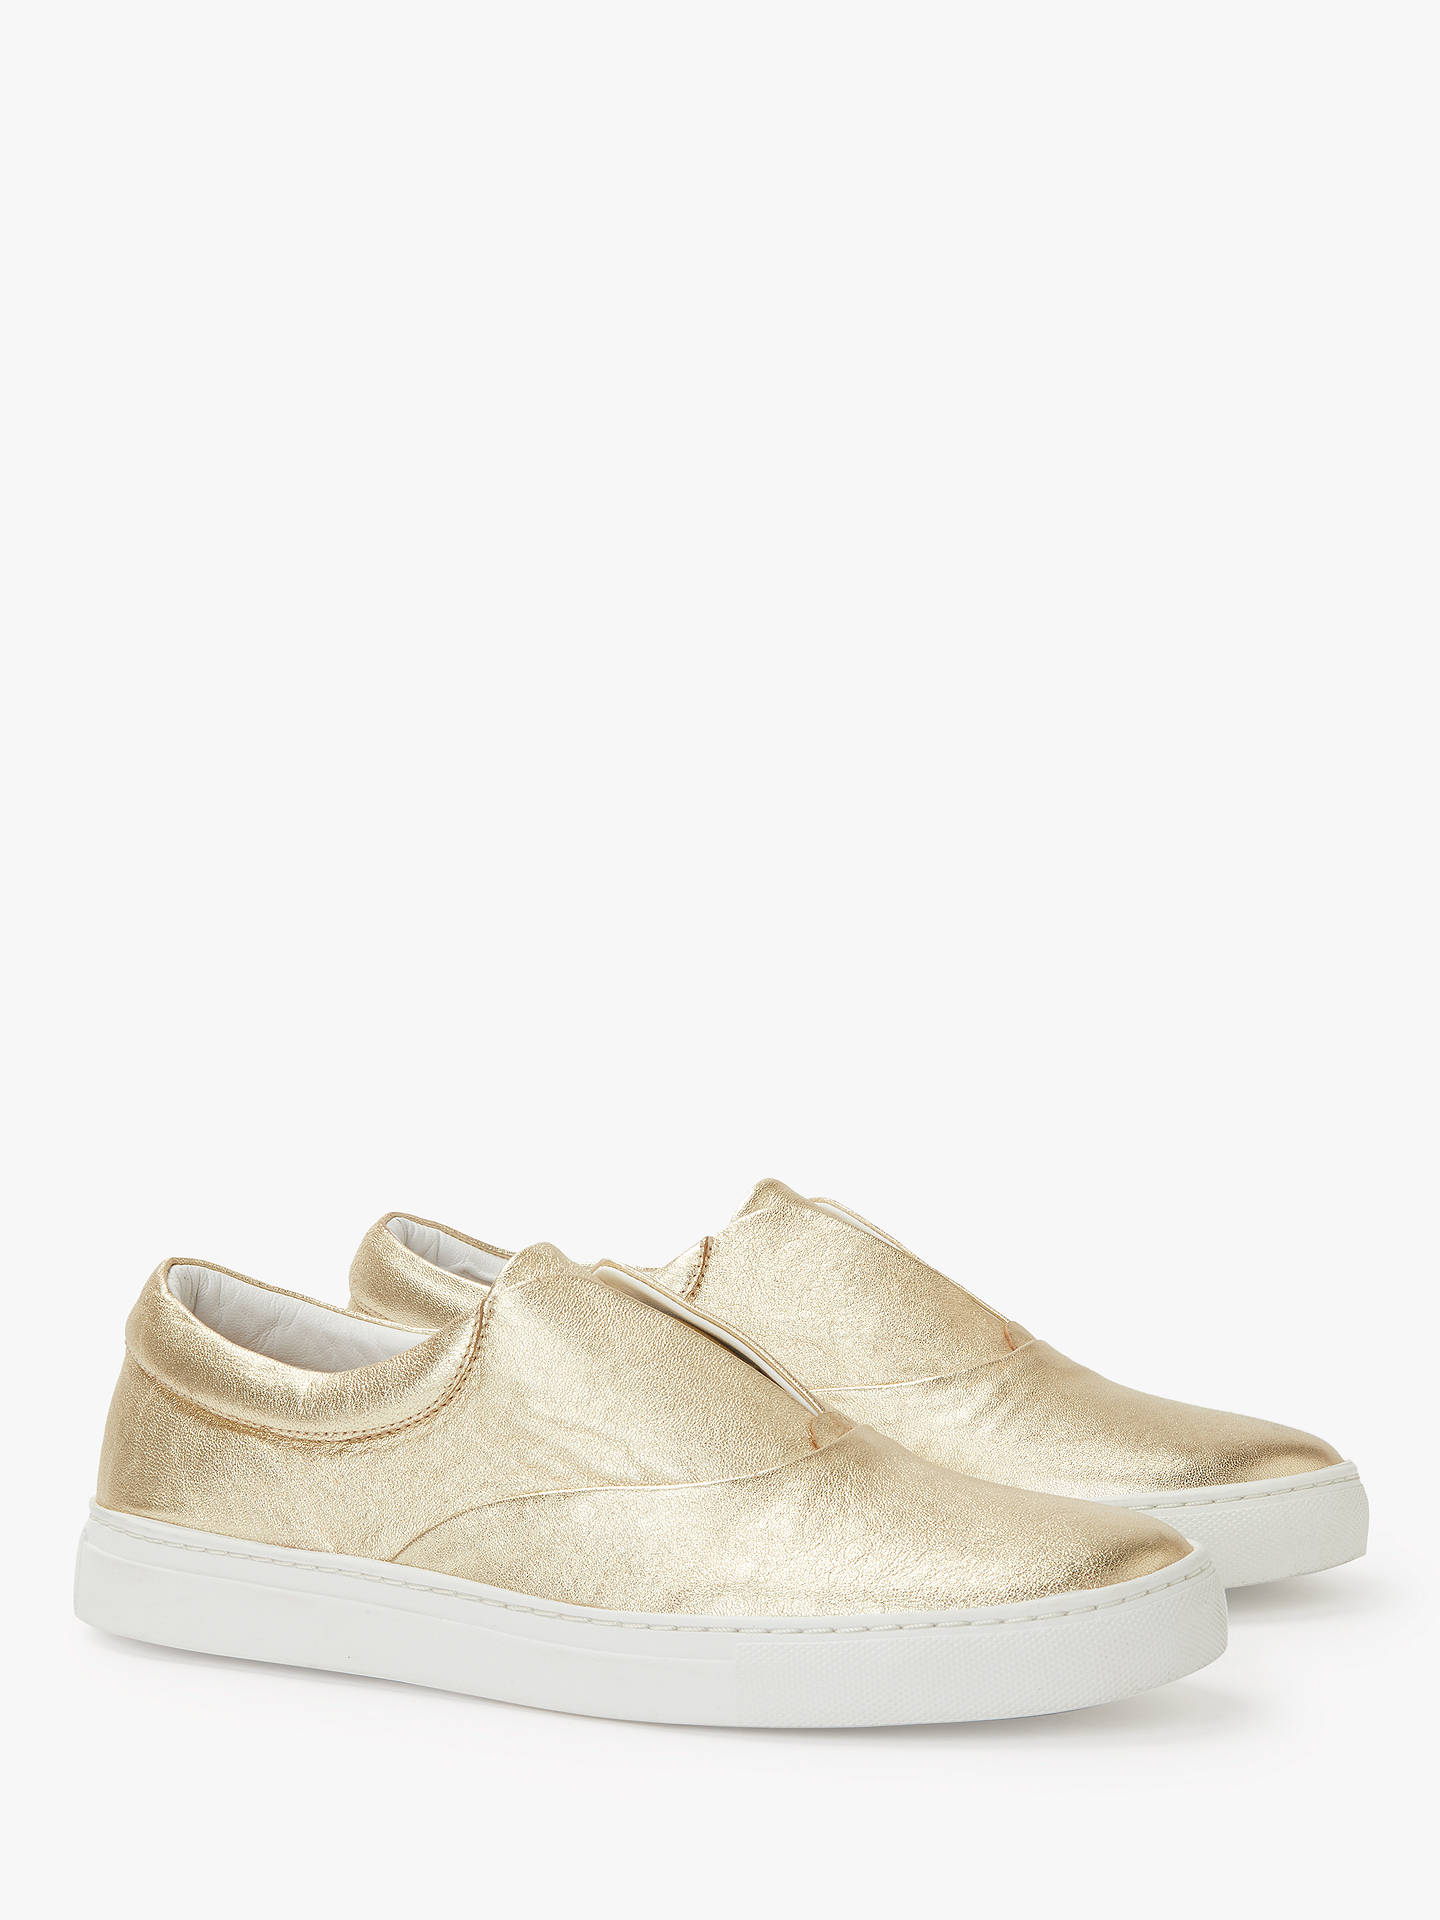 Buy Boden Metallic Slip On Trainers, Gold Leather, 6 Online at johnlewis.com